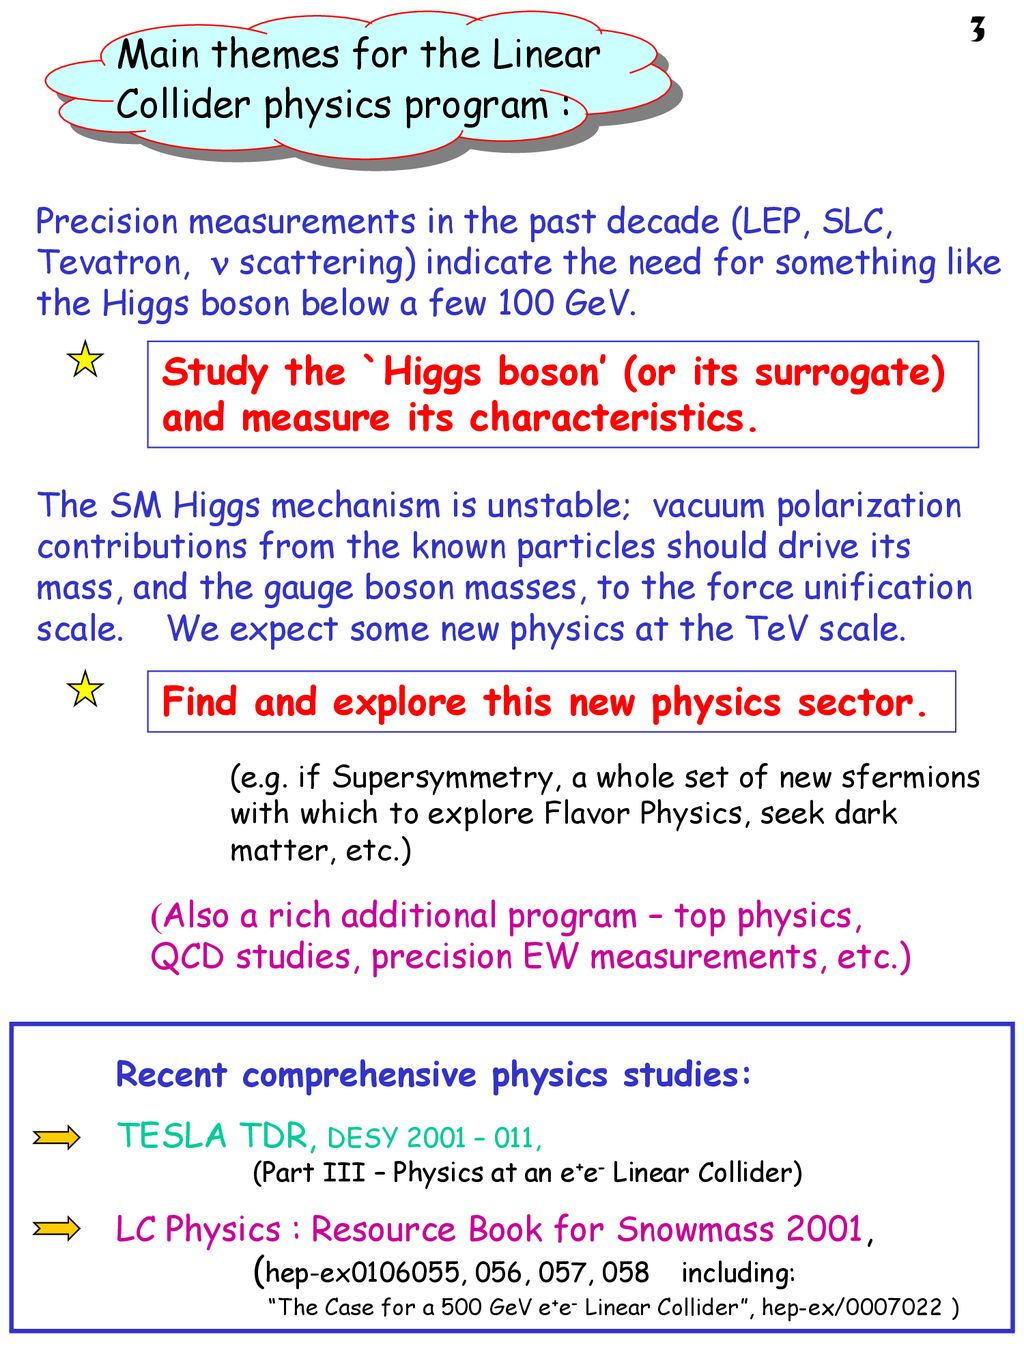 Linear Collider Physics Resource Book for Snowmass 2001, 2: Higgs and Supersymmetry Studies